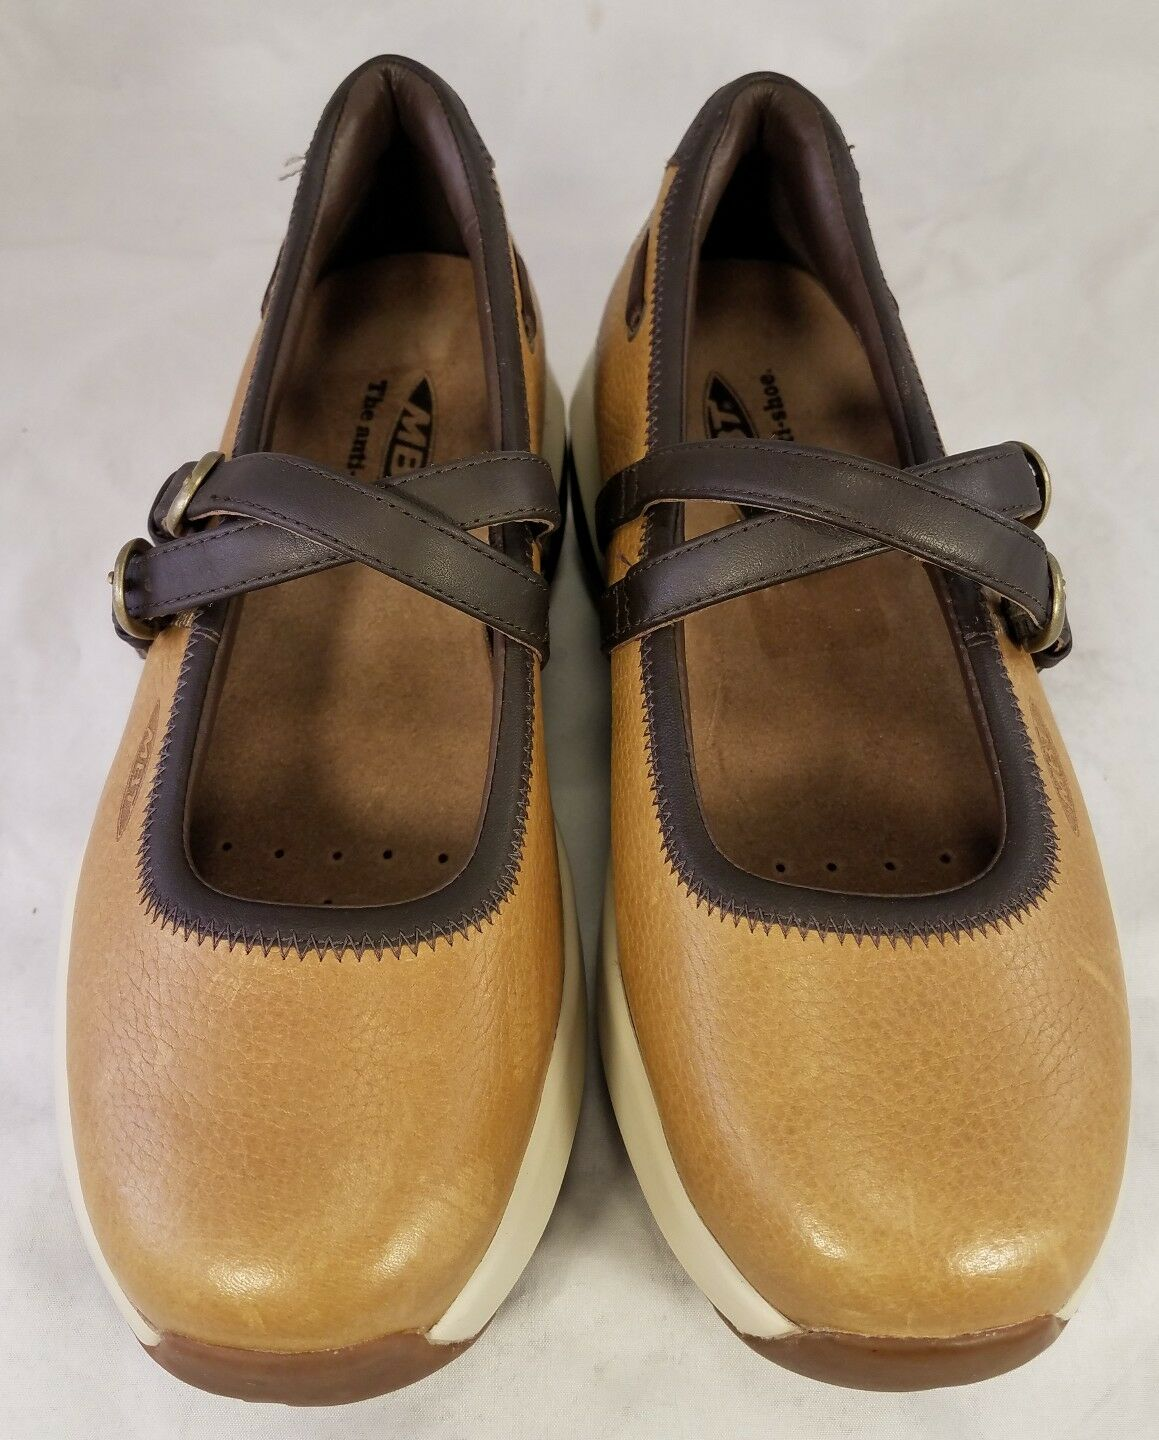 MINT MBT WOMAN SHOES MARY JANE JANE JANE CHANGA MUSTARD BROWN LEATHER 39 8.5 132185